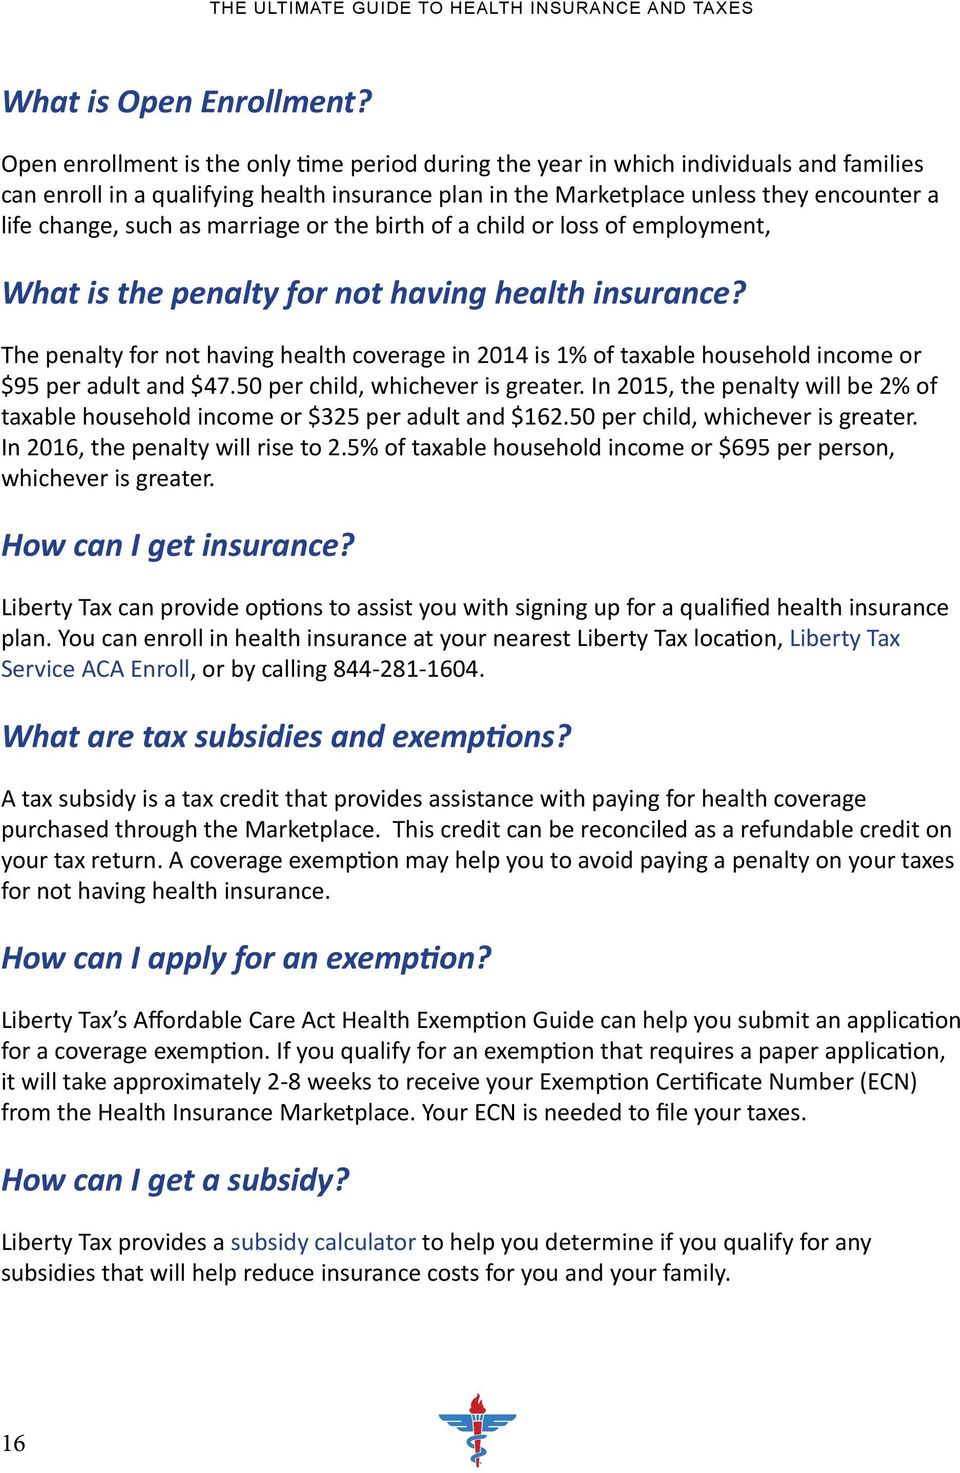 as marriage or the birth of a child or loss of employment, What is the penalty for not having health insurance?